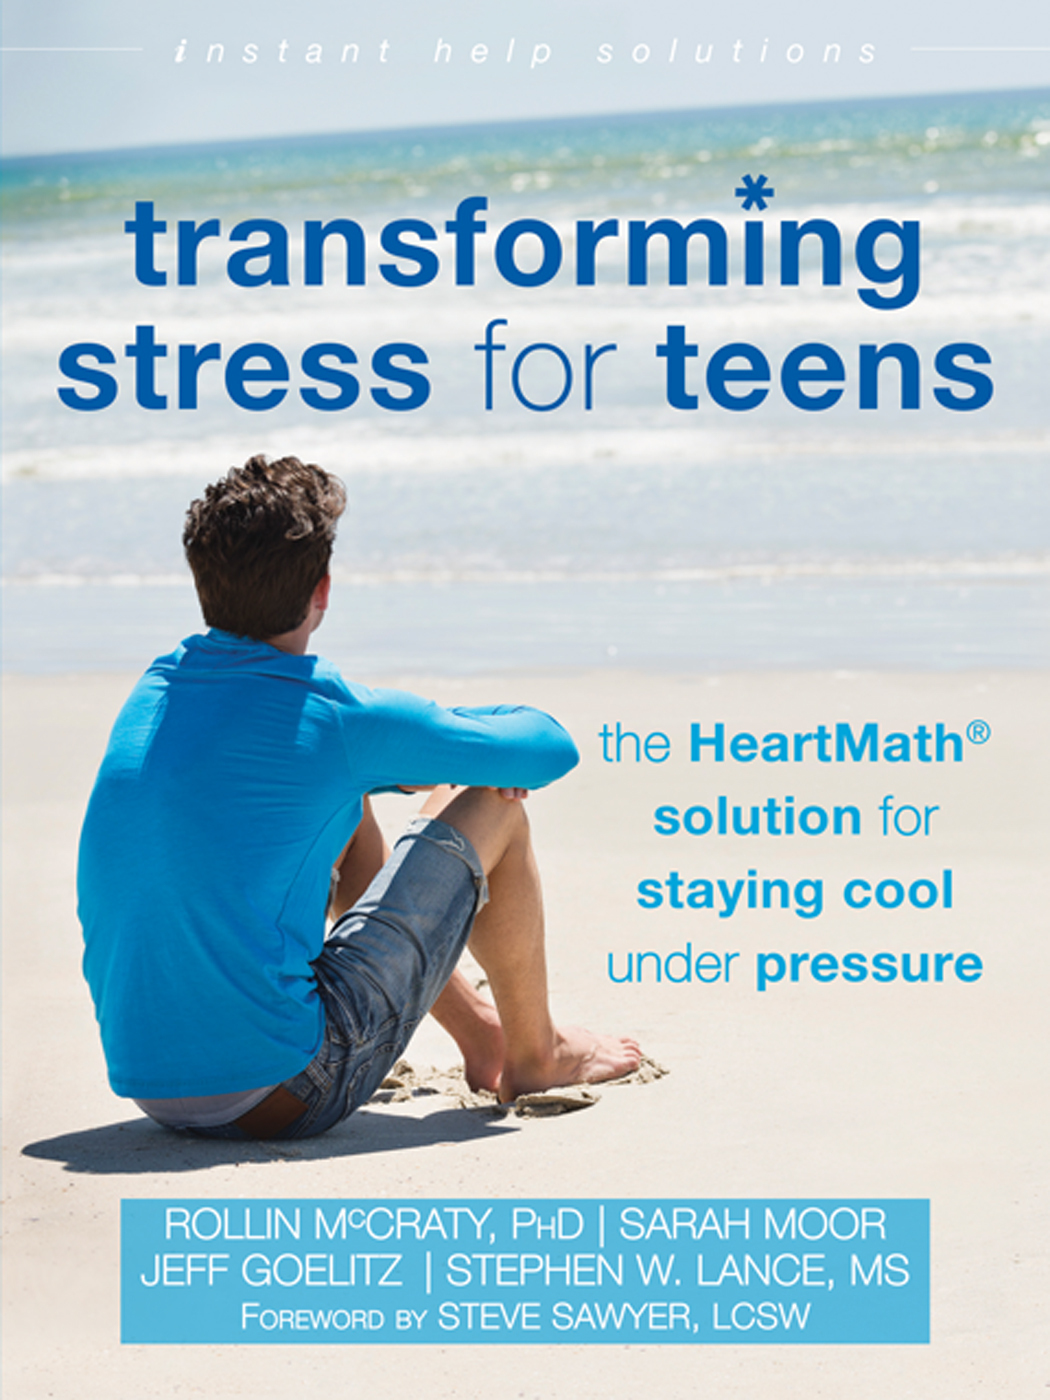 Transforming-Stress-for-Teens-The-HeartMath-Solution-for-Staying-Cool-Under-Pressure